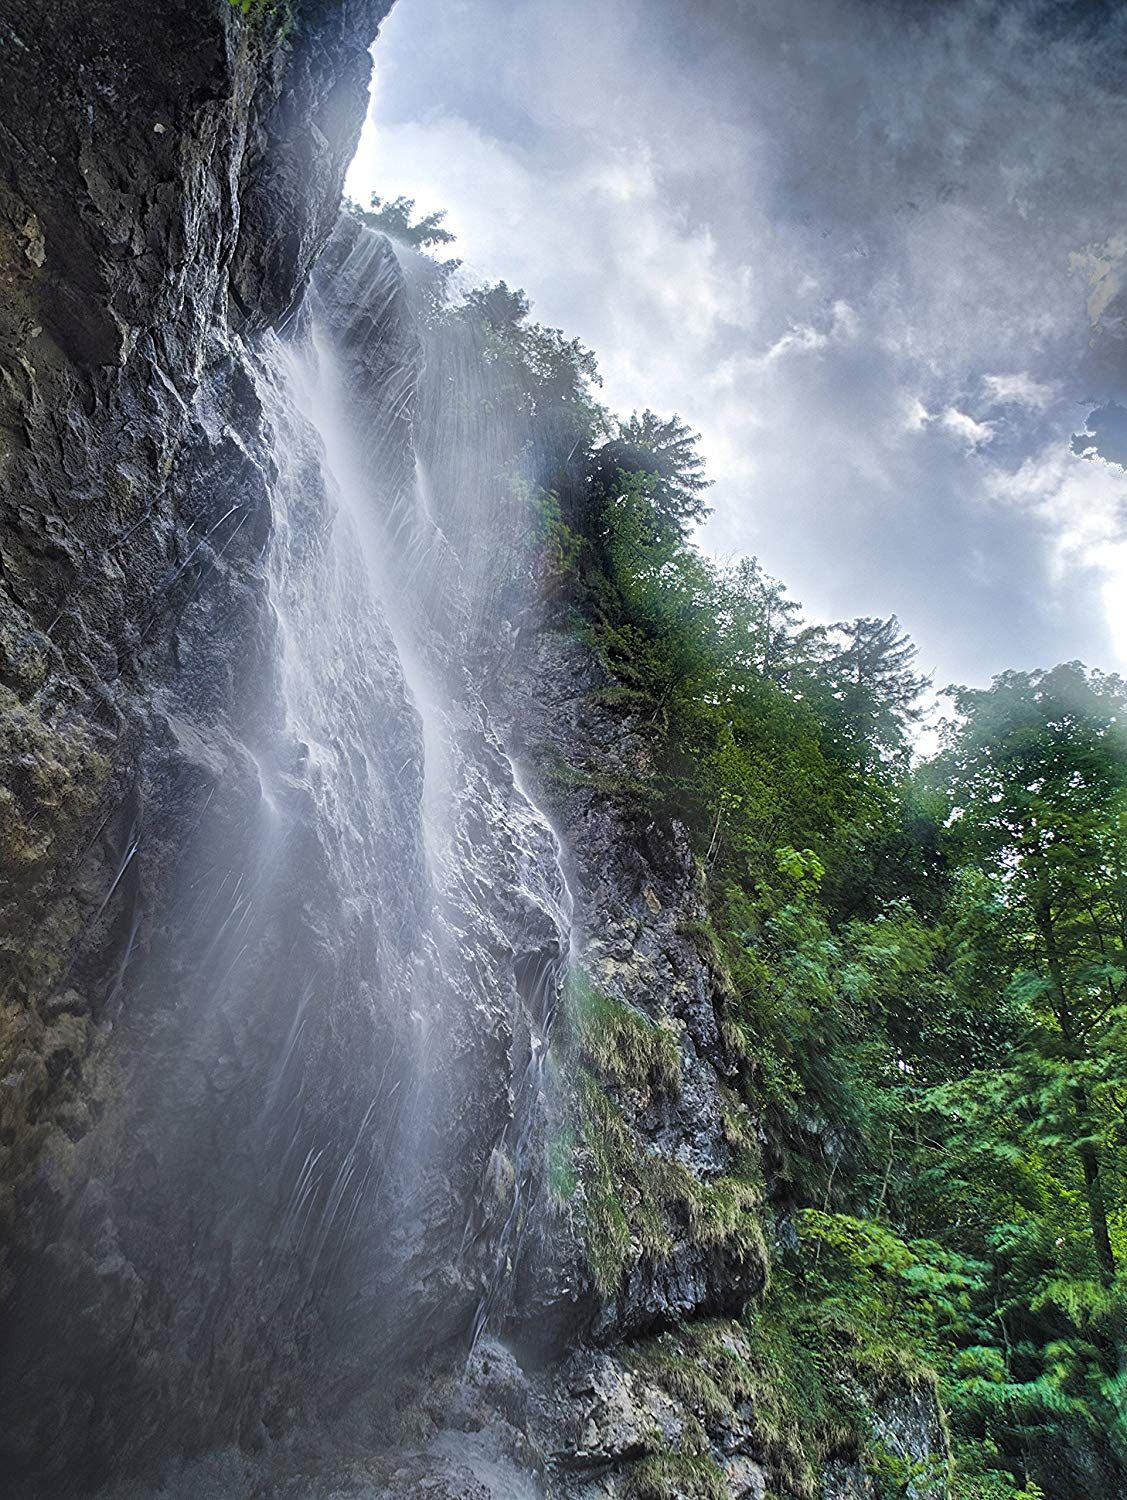 Waterfall Paper Print Strong Extreme Picture Professional Photography Print Hdr Nature W Waterfall Travel Around The World Professional Photography Printing